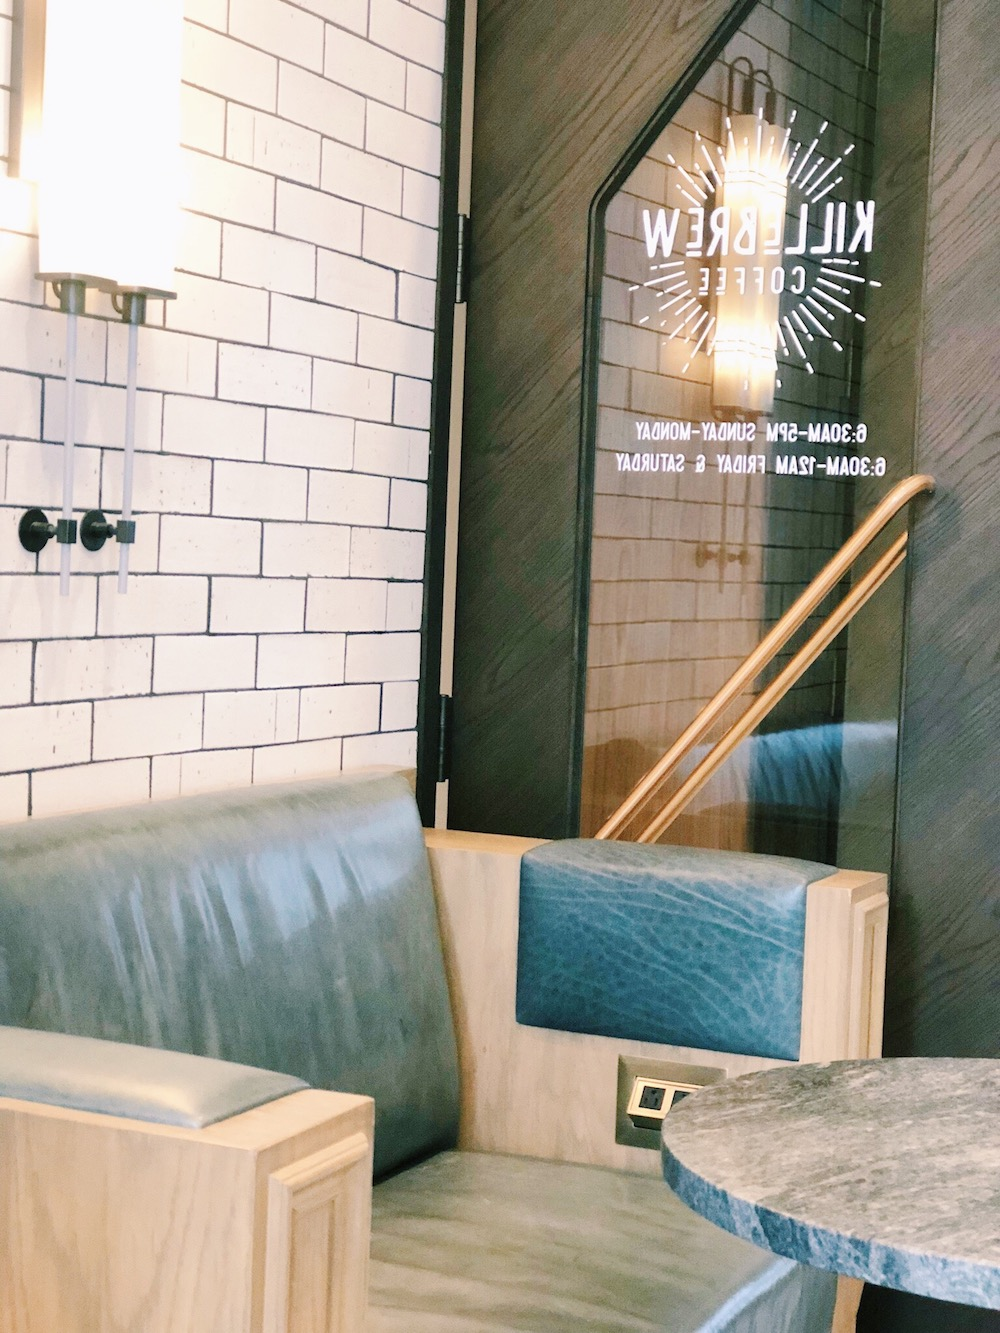 Seating area and door at coffee shop